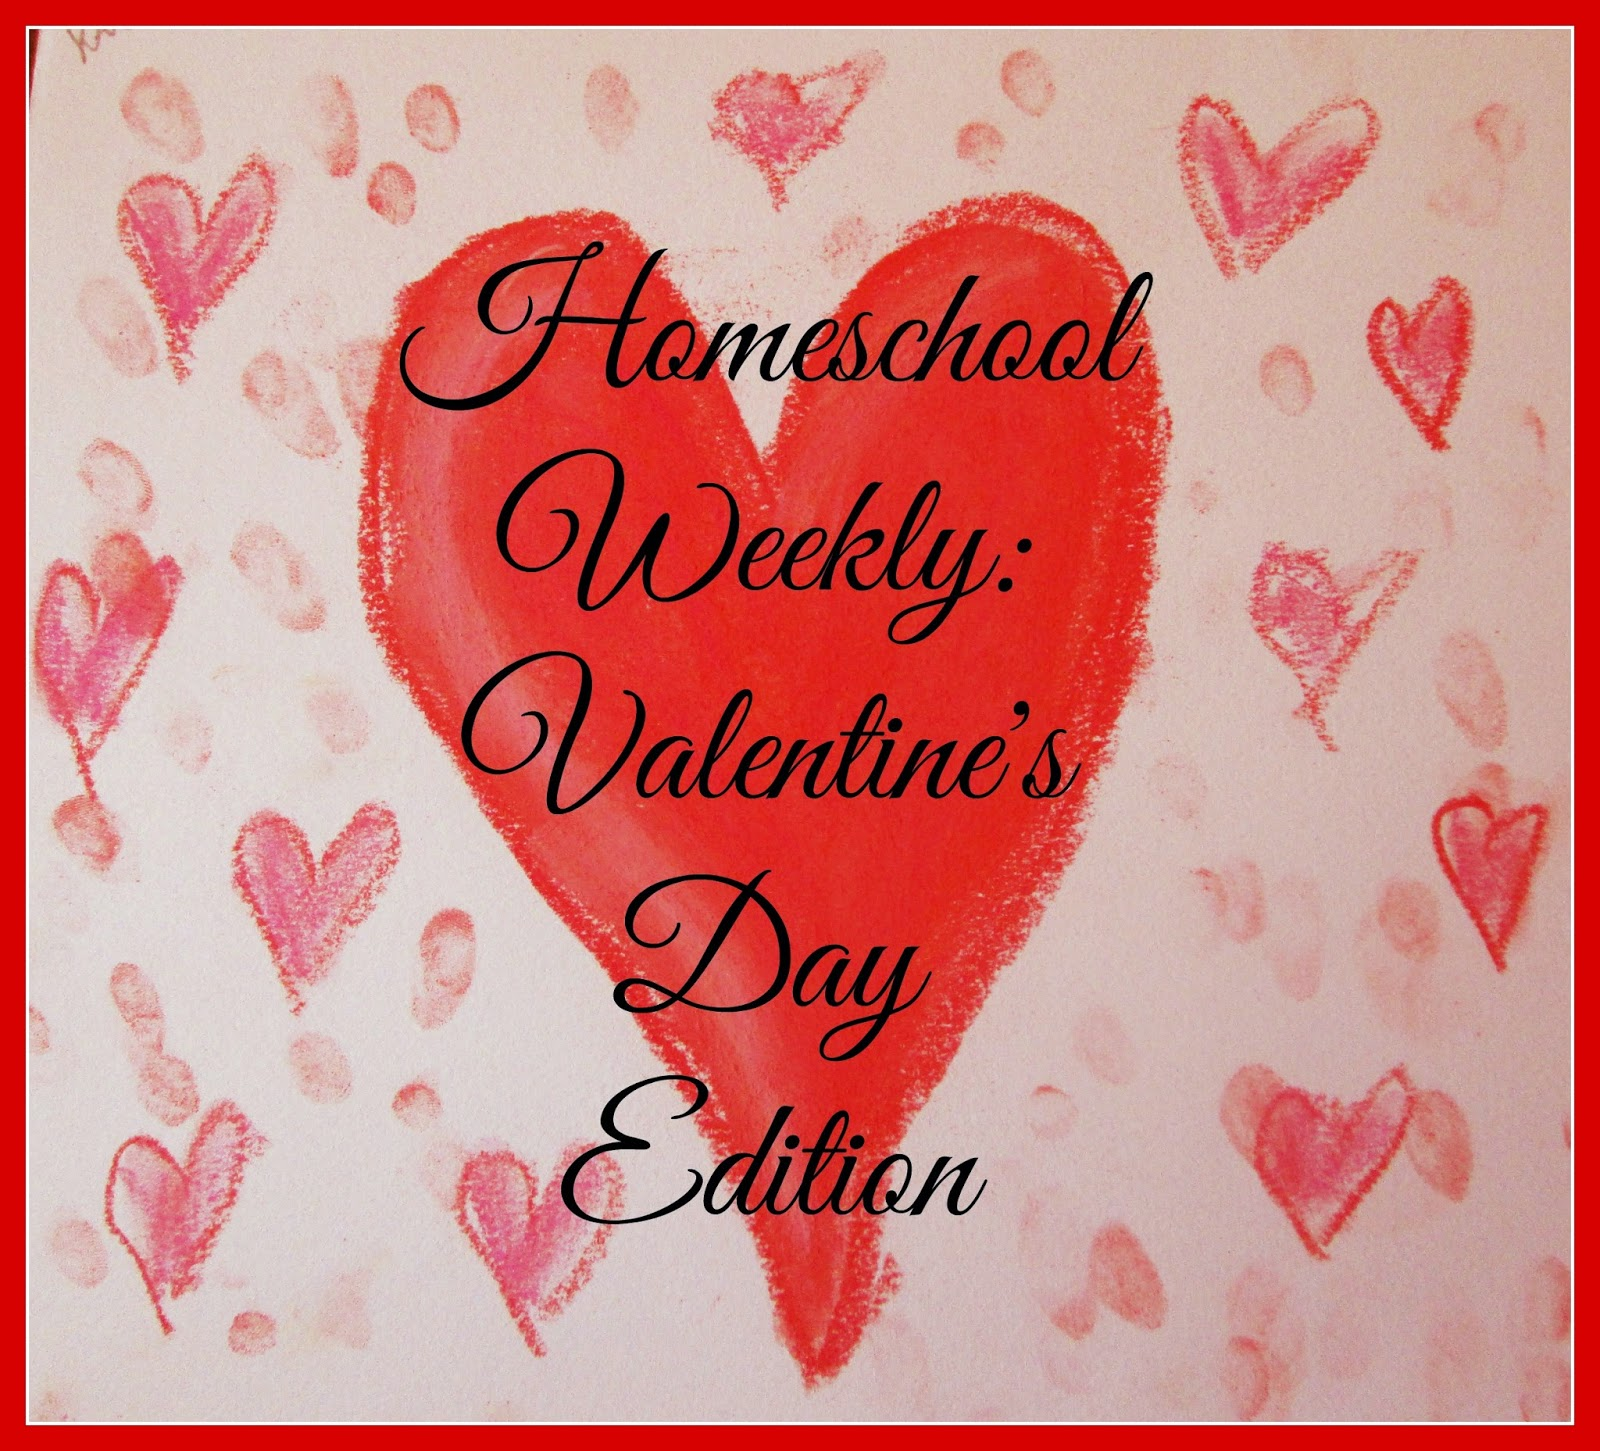 Homeschool Weekly: Valentine's Day Edition @ kympossibleblog.blogspot.com